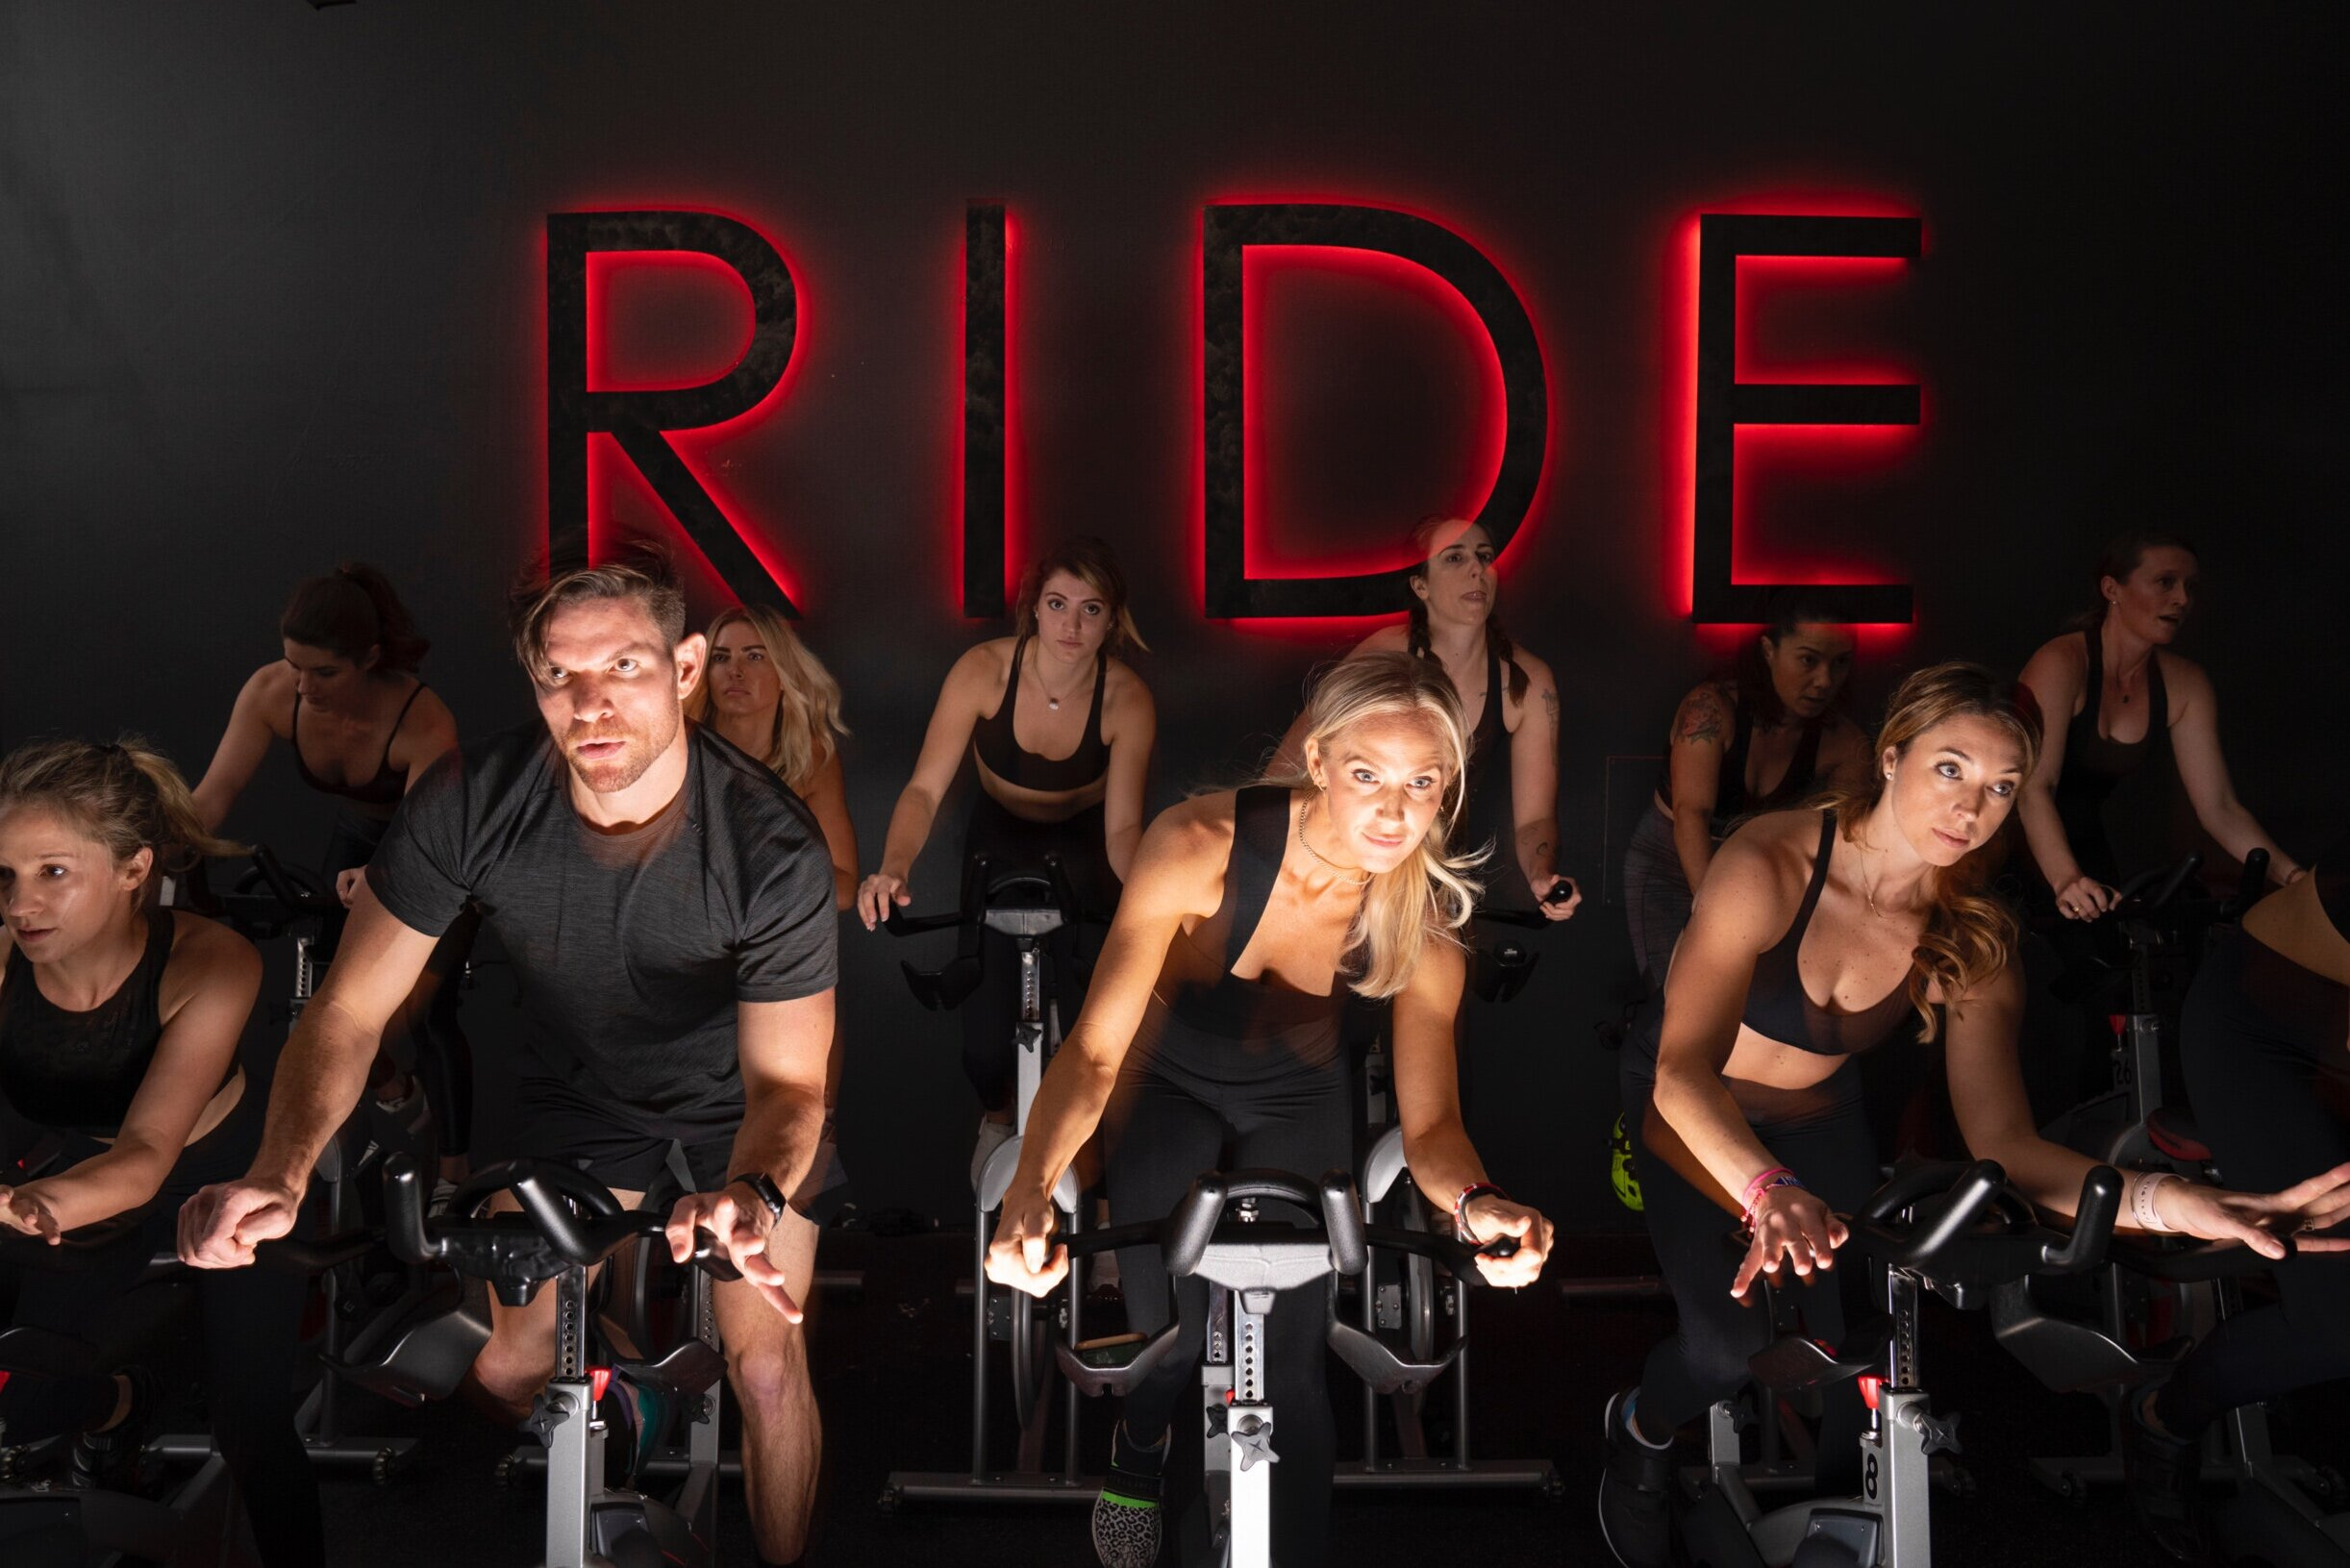 RIDE - A thrilling, effective and fat-burning cycling class led by inspirational instructors with beat-driven choreography involving the entire body. Each ride burns over 500+ calories per class while working the core and upper body using weights.How to Prep for your first ride.